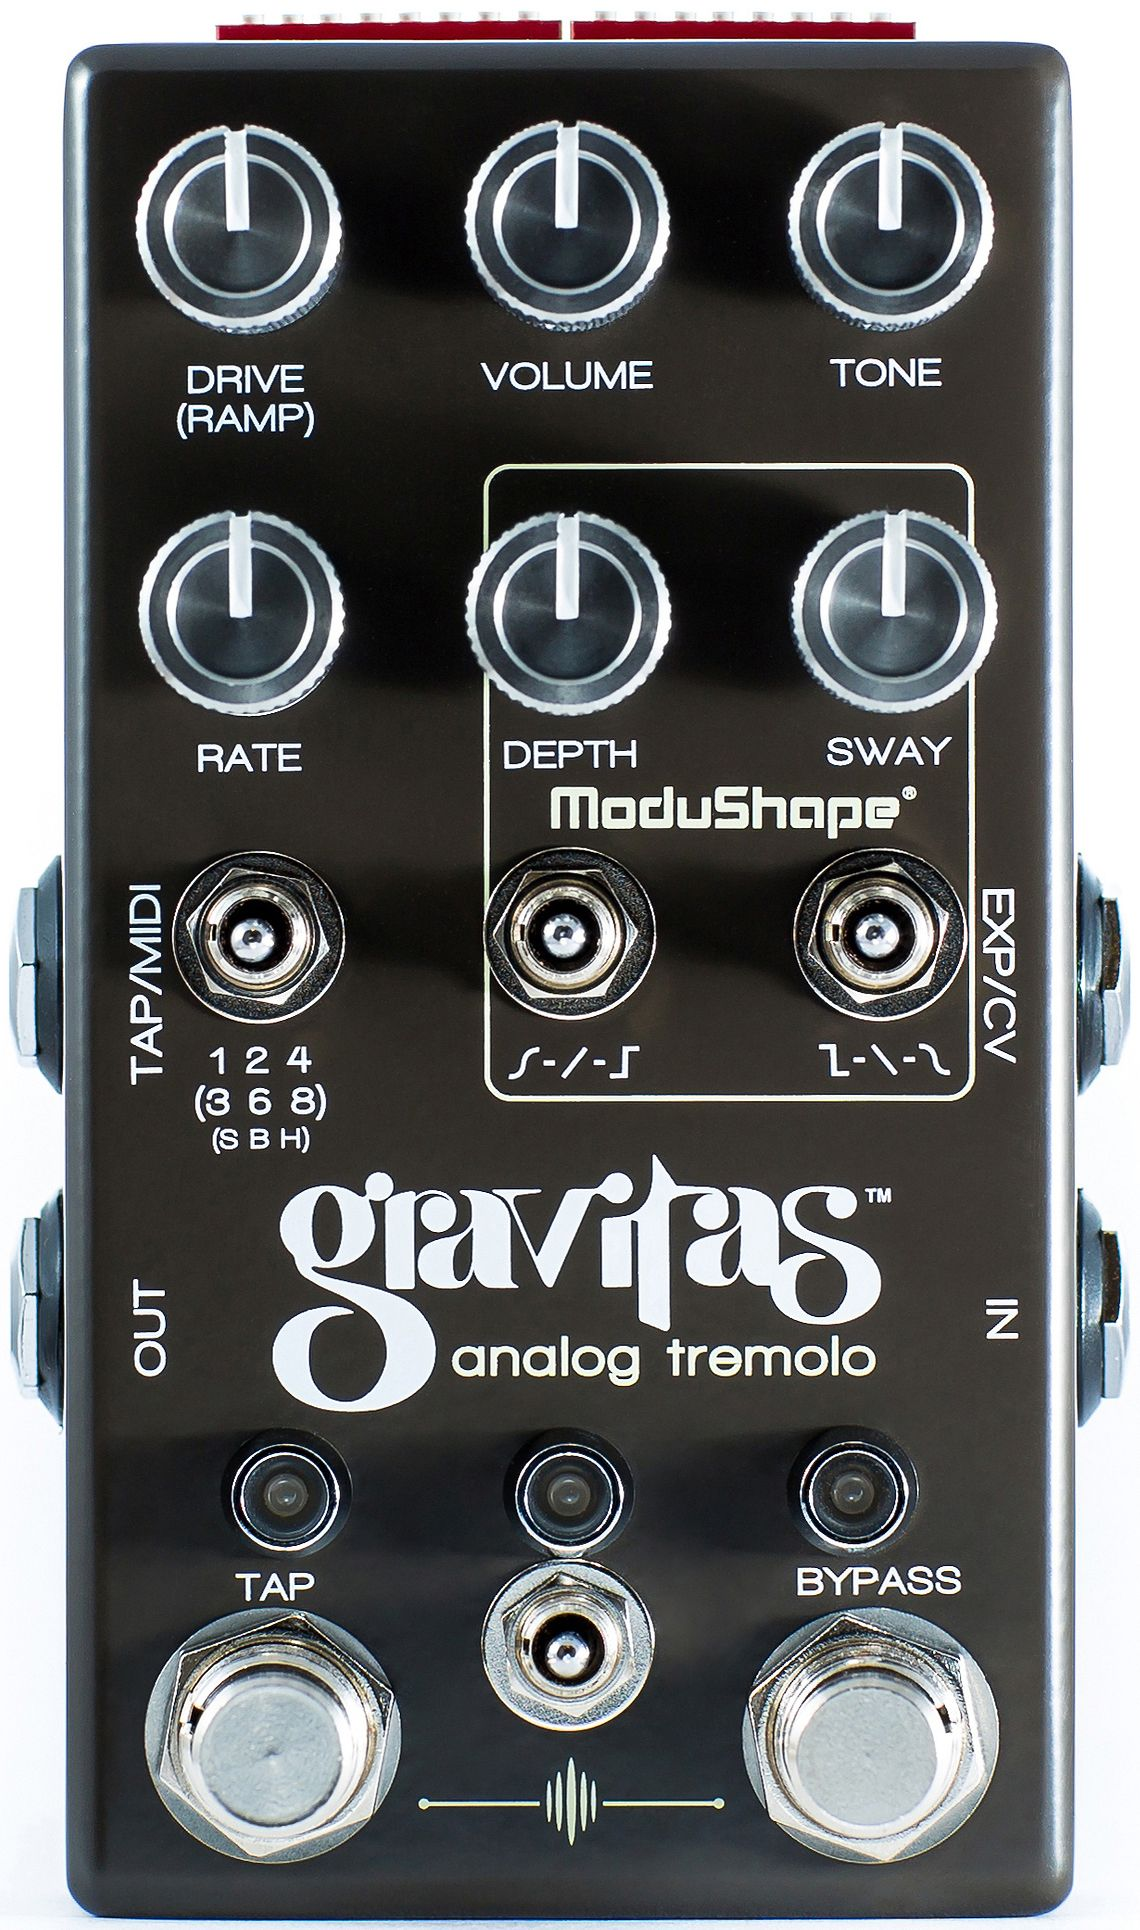 Gravitas Guitar Pedals Analog Signal Guitar Effects Pedals